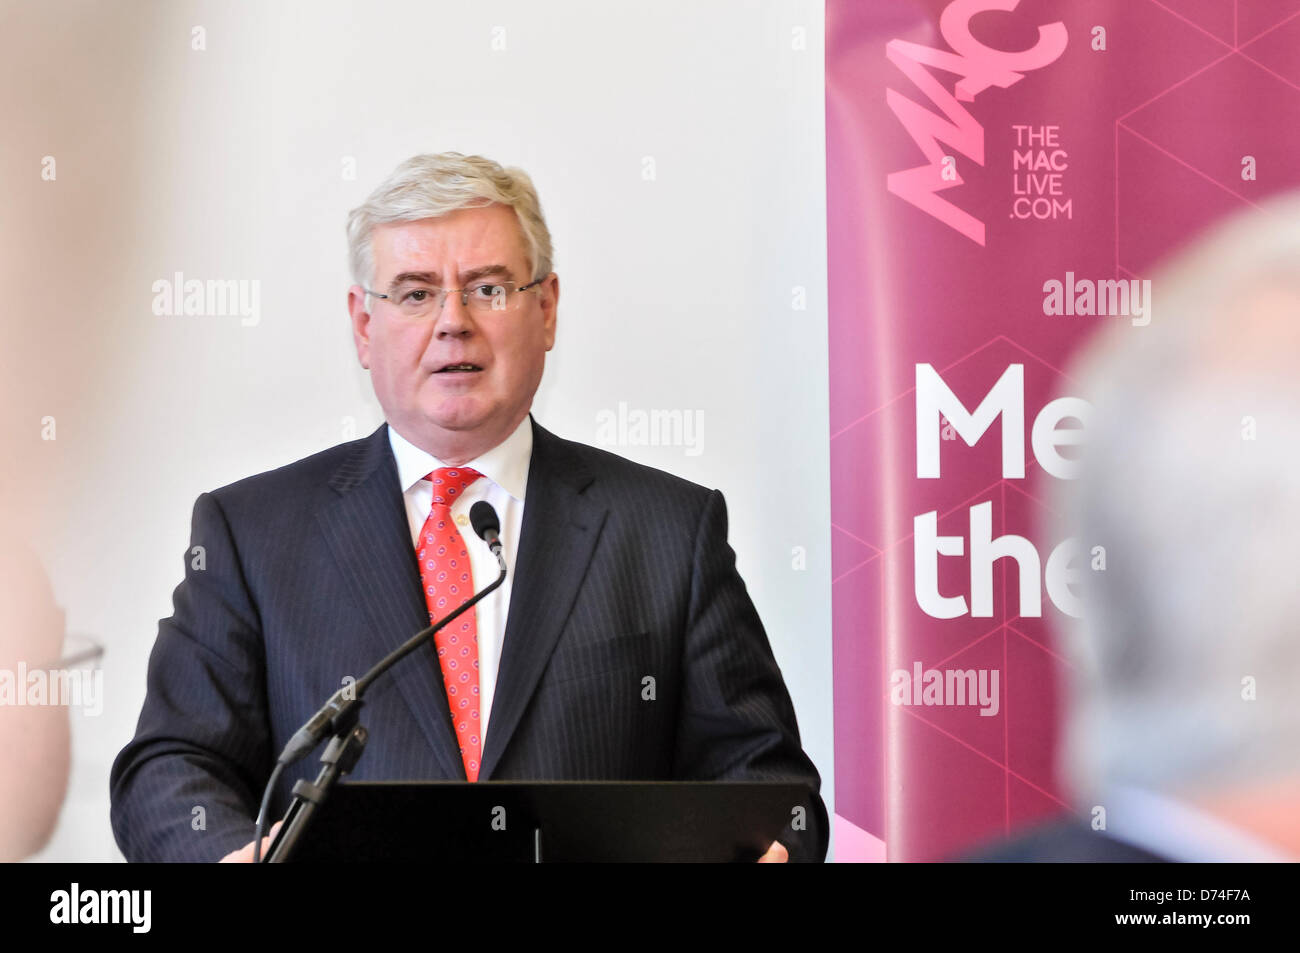 Belfast, Northern Ireland. 29th April 2013. Irish Tánaiste Eamon Gilmore addresses a number of 15 year old - Stock Image